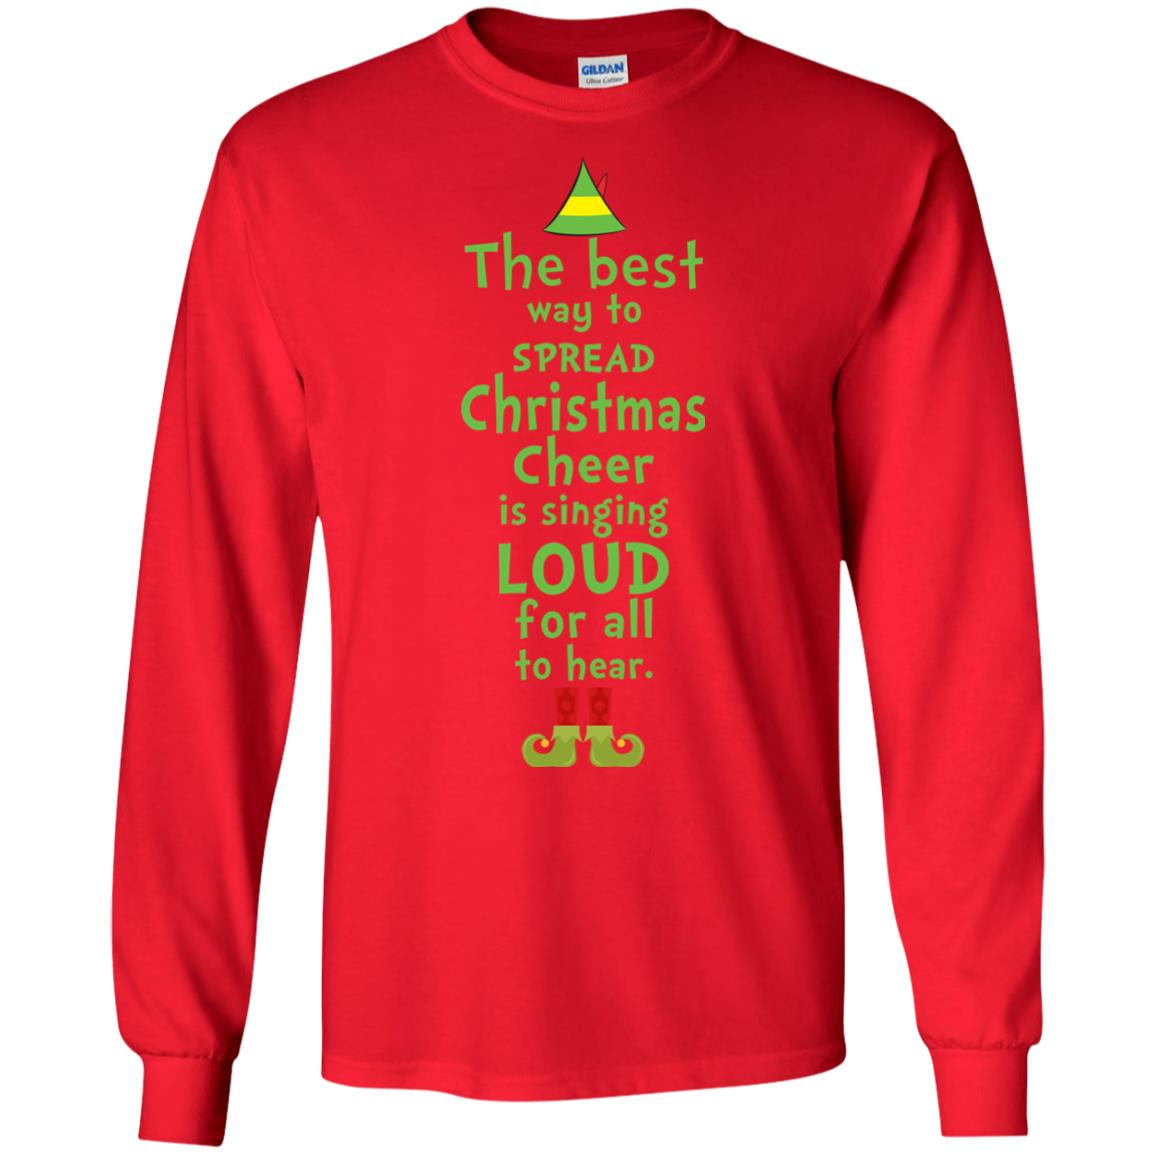 image 2457 - The best way to spread Christmas cheer is singing loud for all to hear Sweater, Shirt